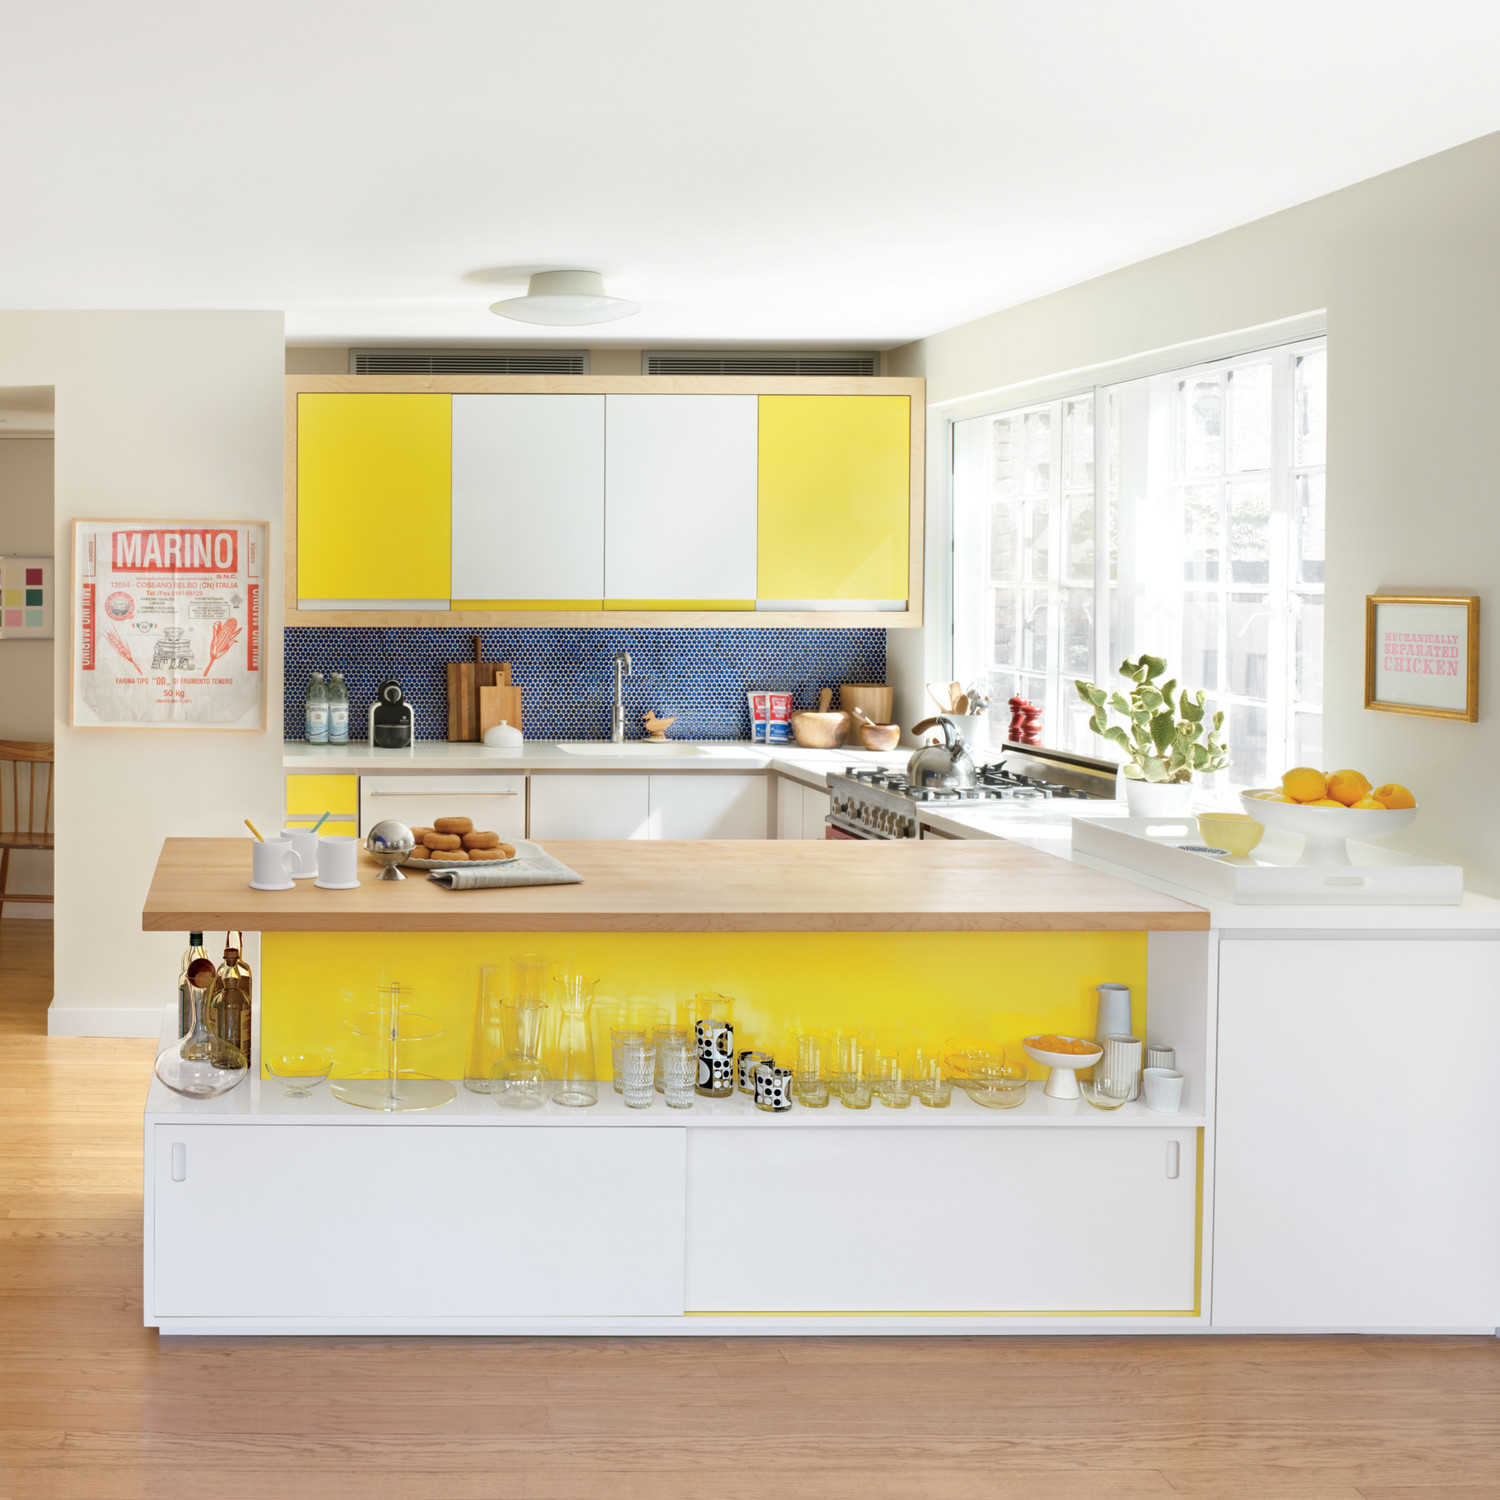 Kitchen Remodel Images: Our Favorite Kitchen Styles